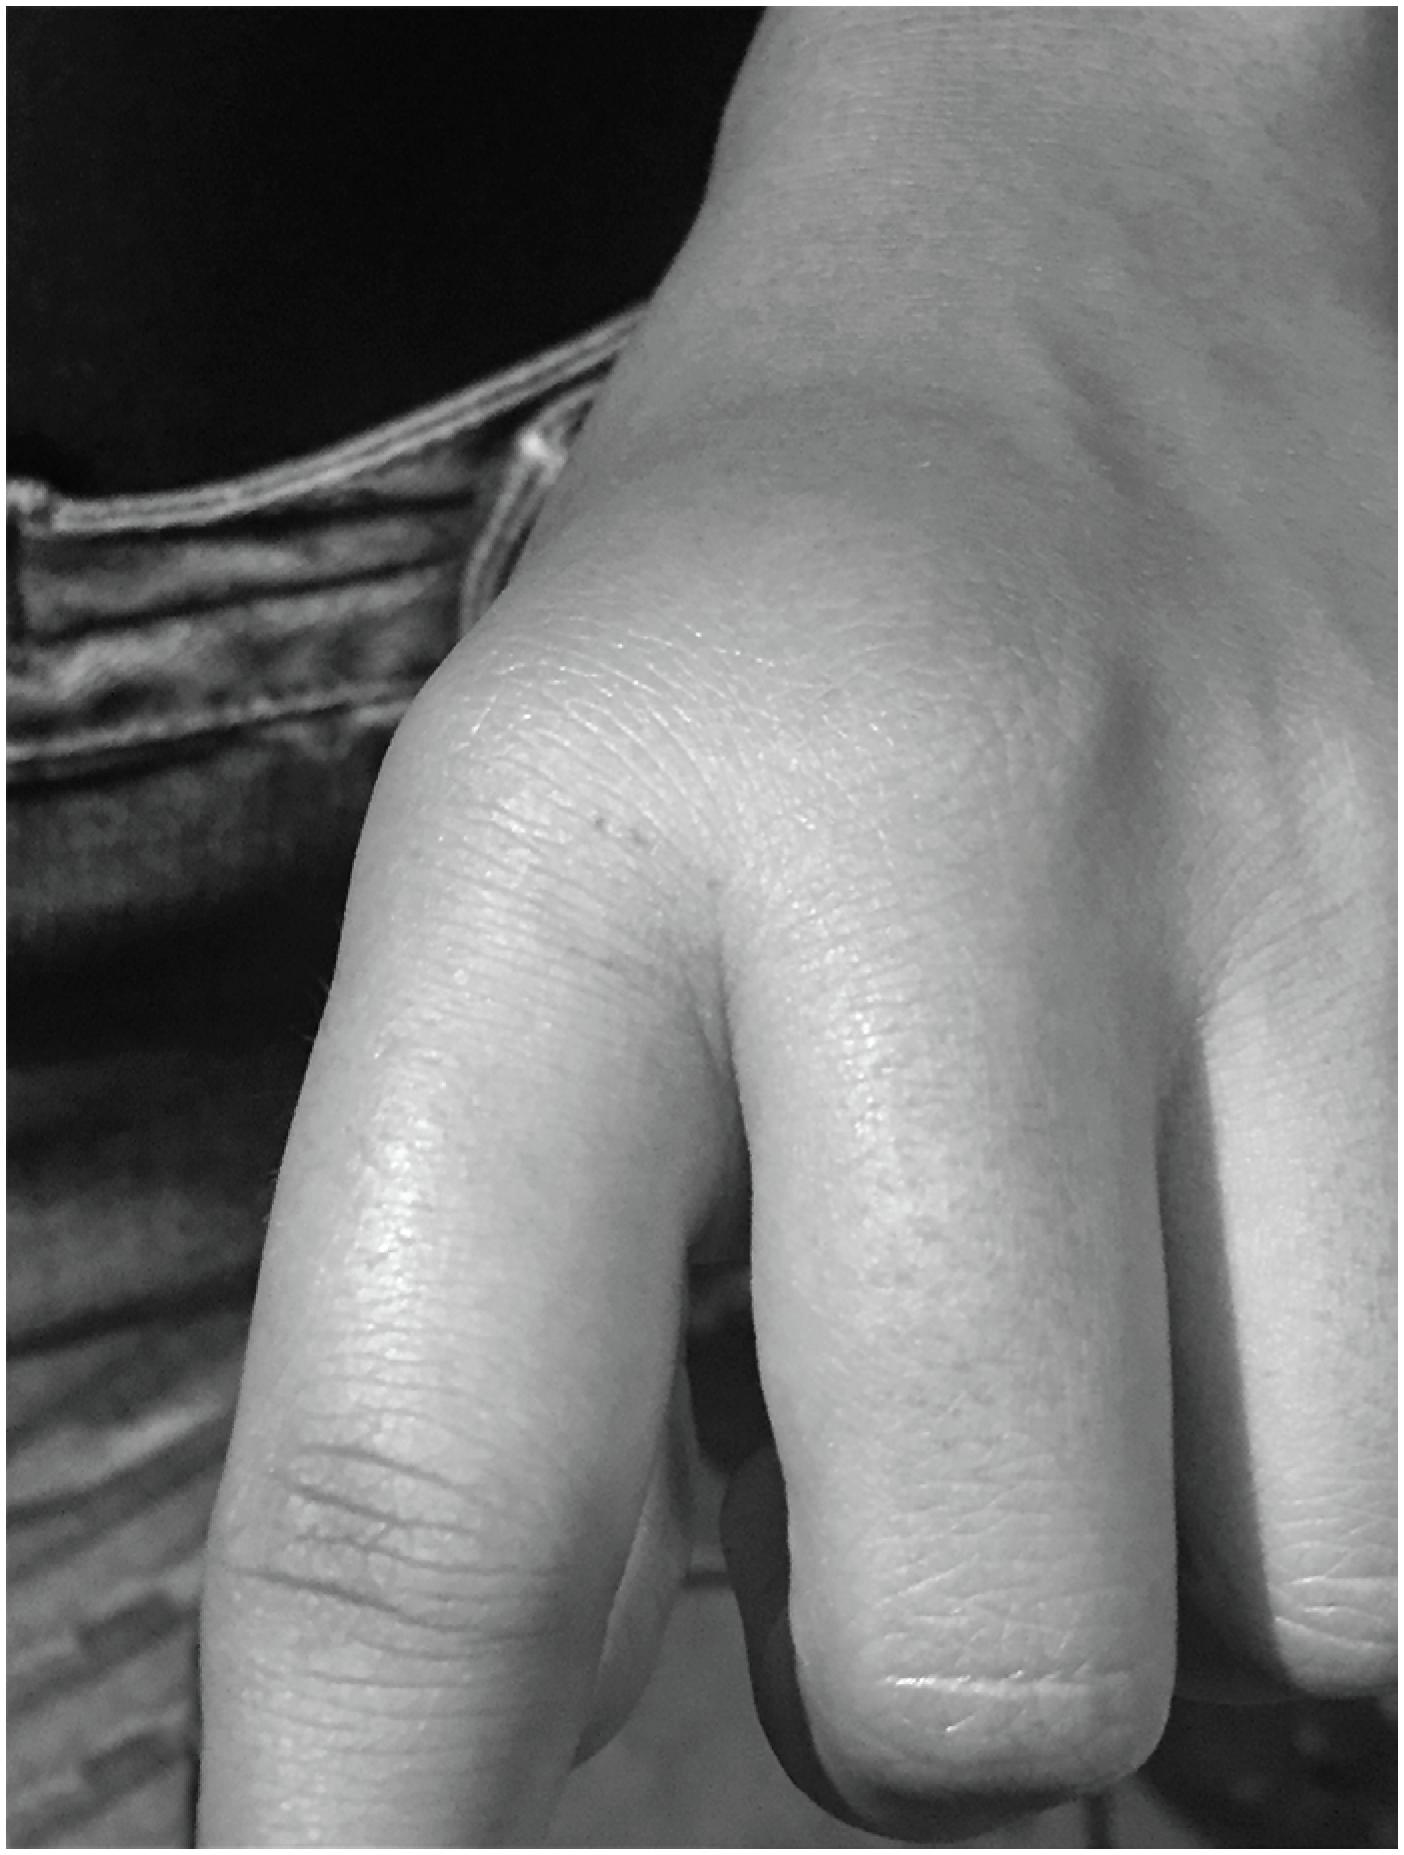 Swelling of the victim's hand bitten by a Thamnodynastes pallidus specimen